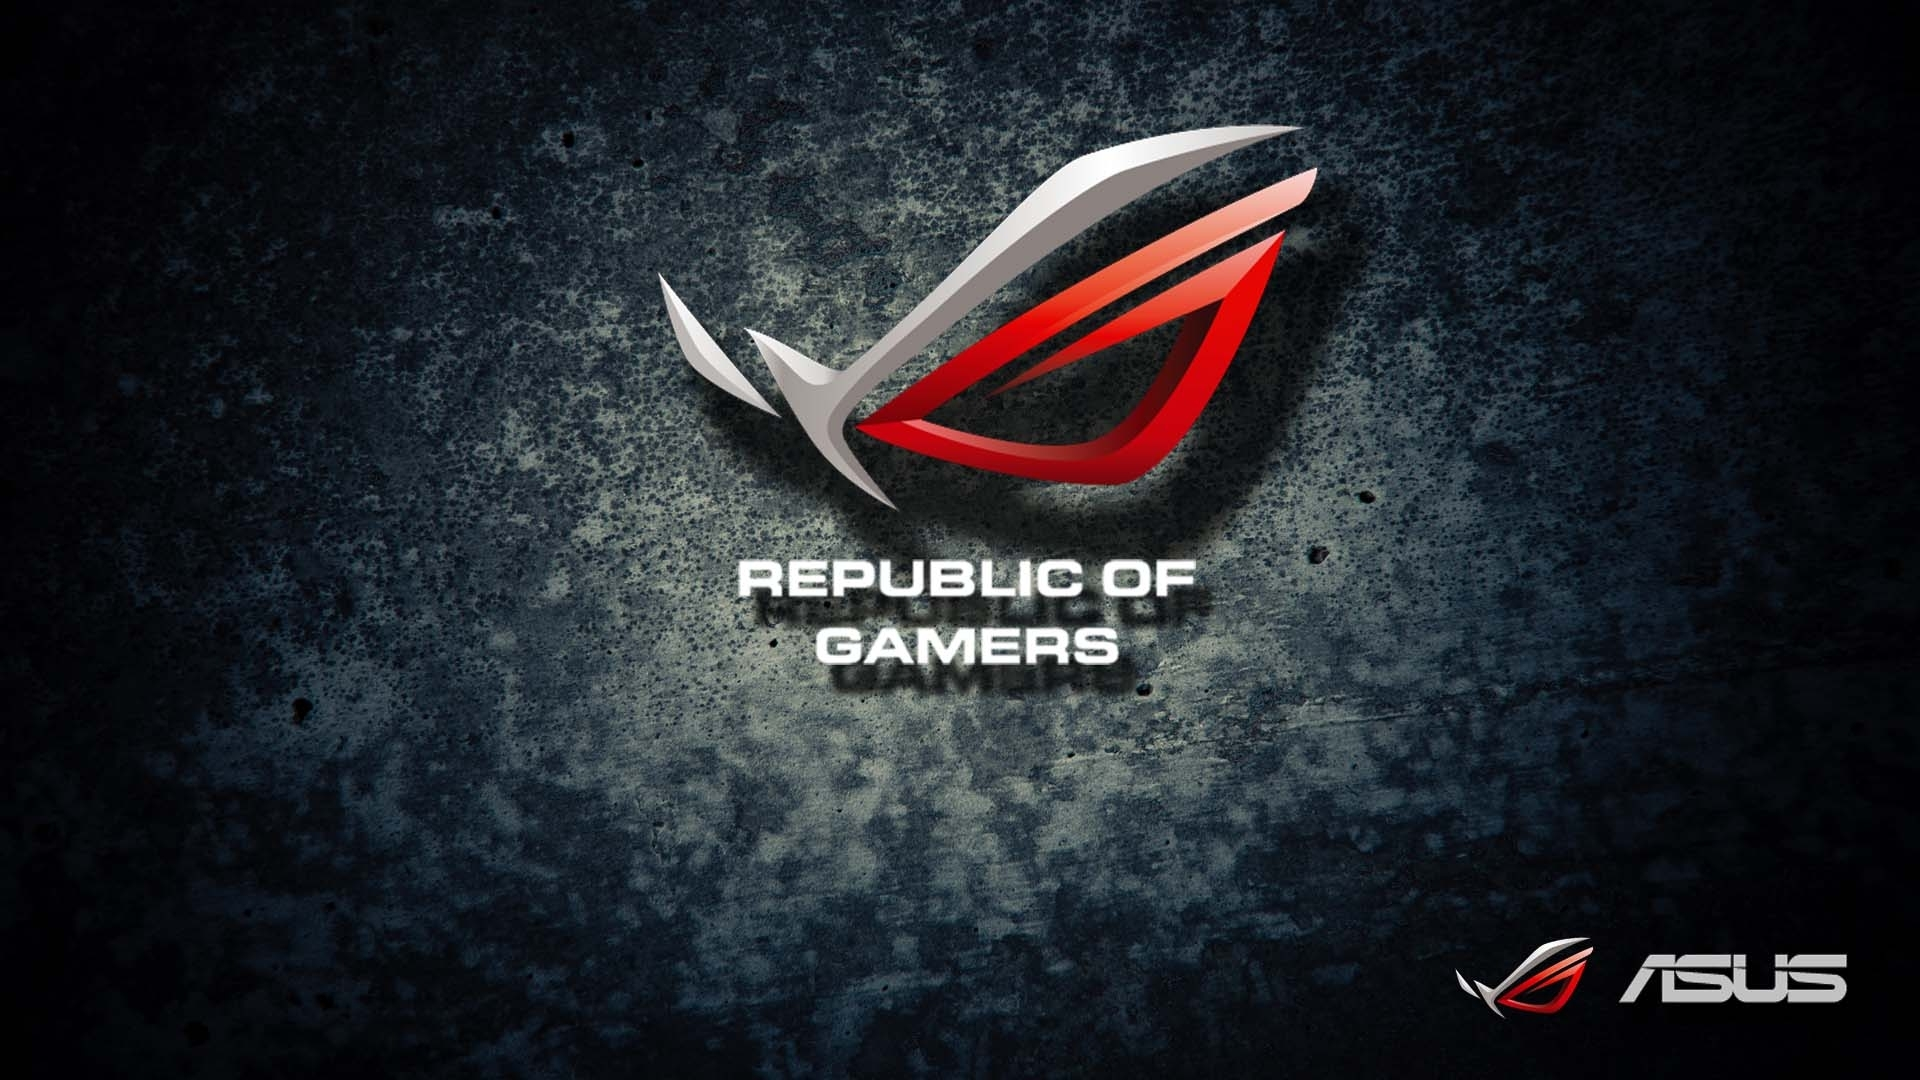 republic-of-gamers-wallpapers - wallpaper.wiki